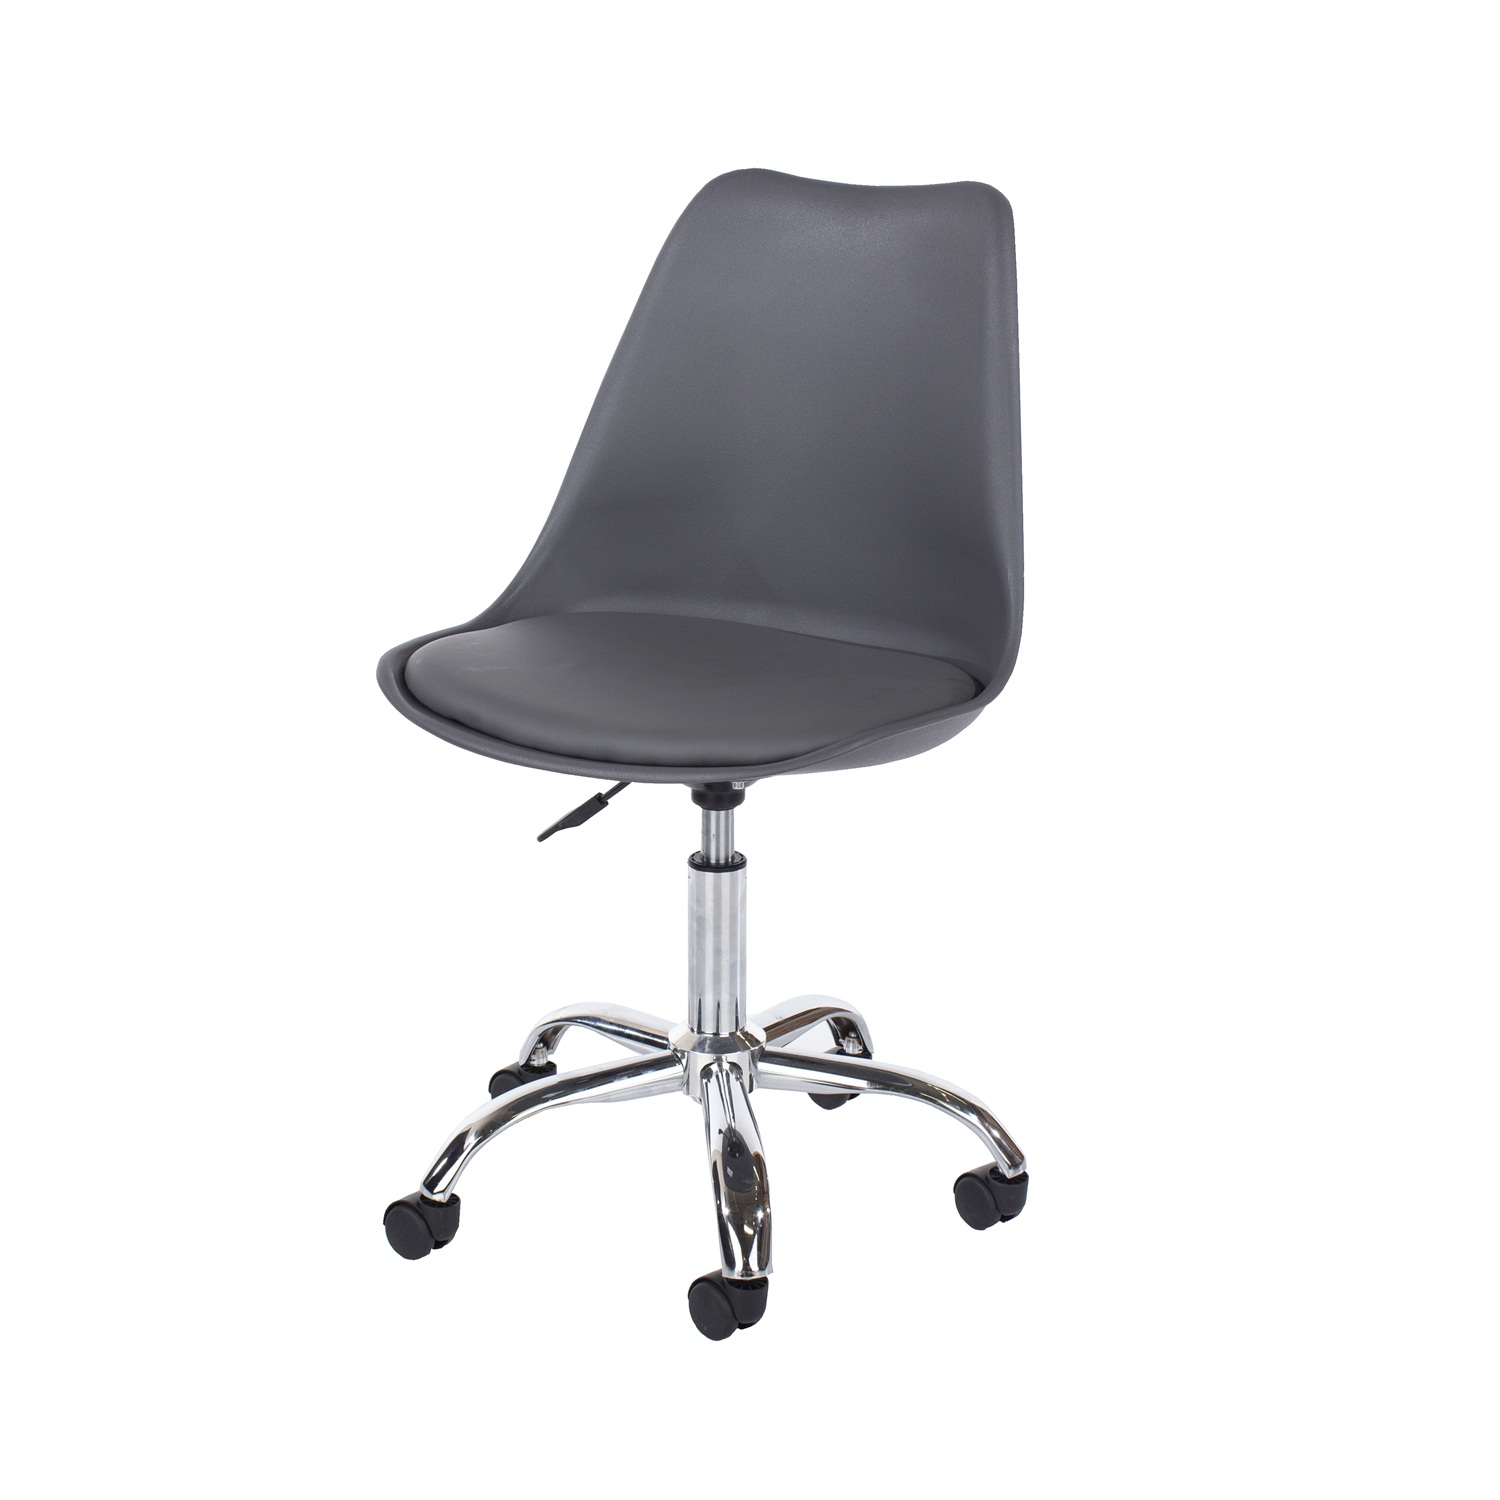 home studio chair with upholstered seat in dk grey